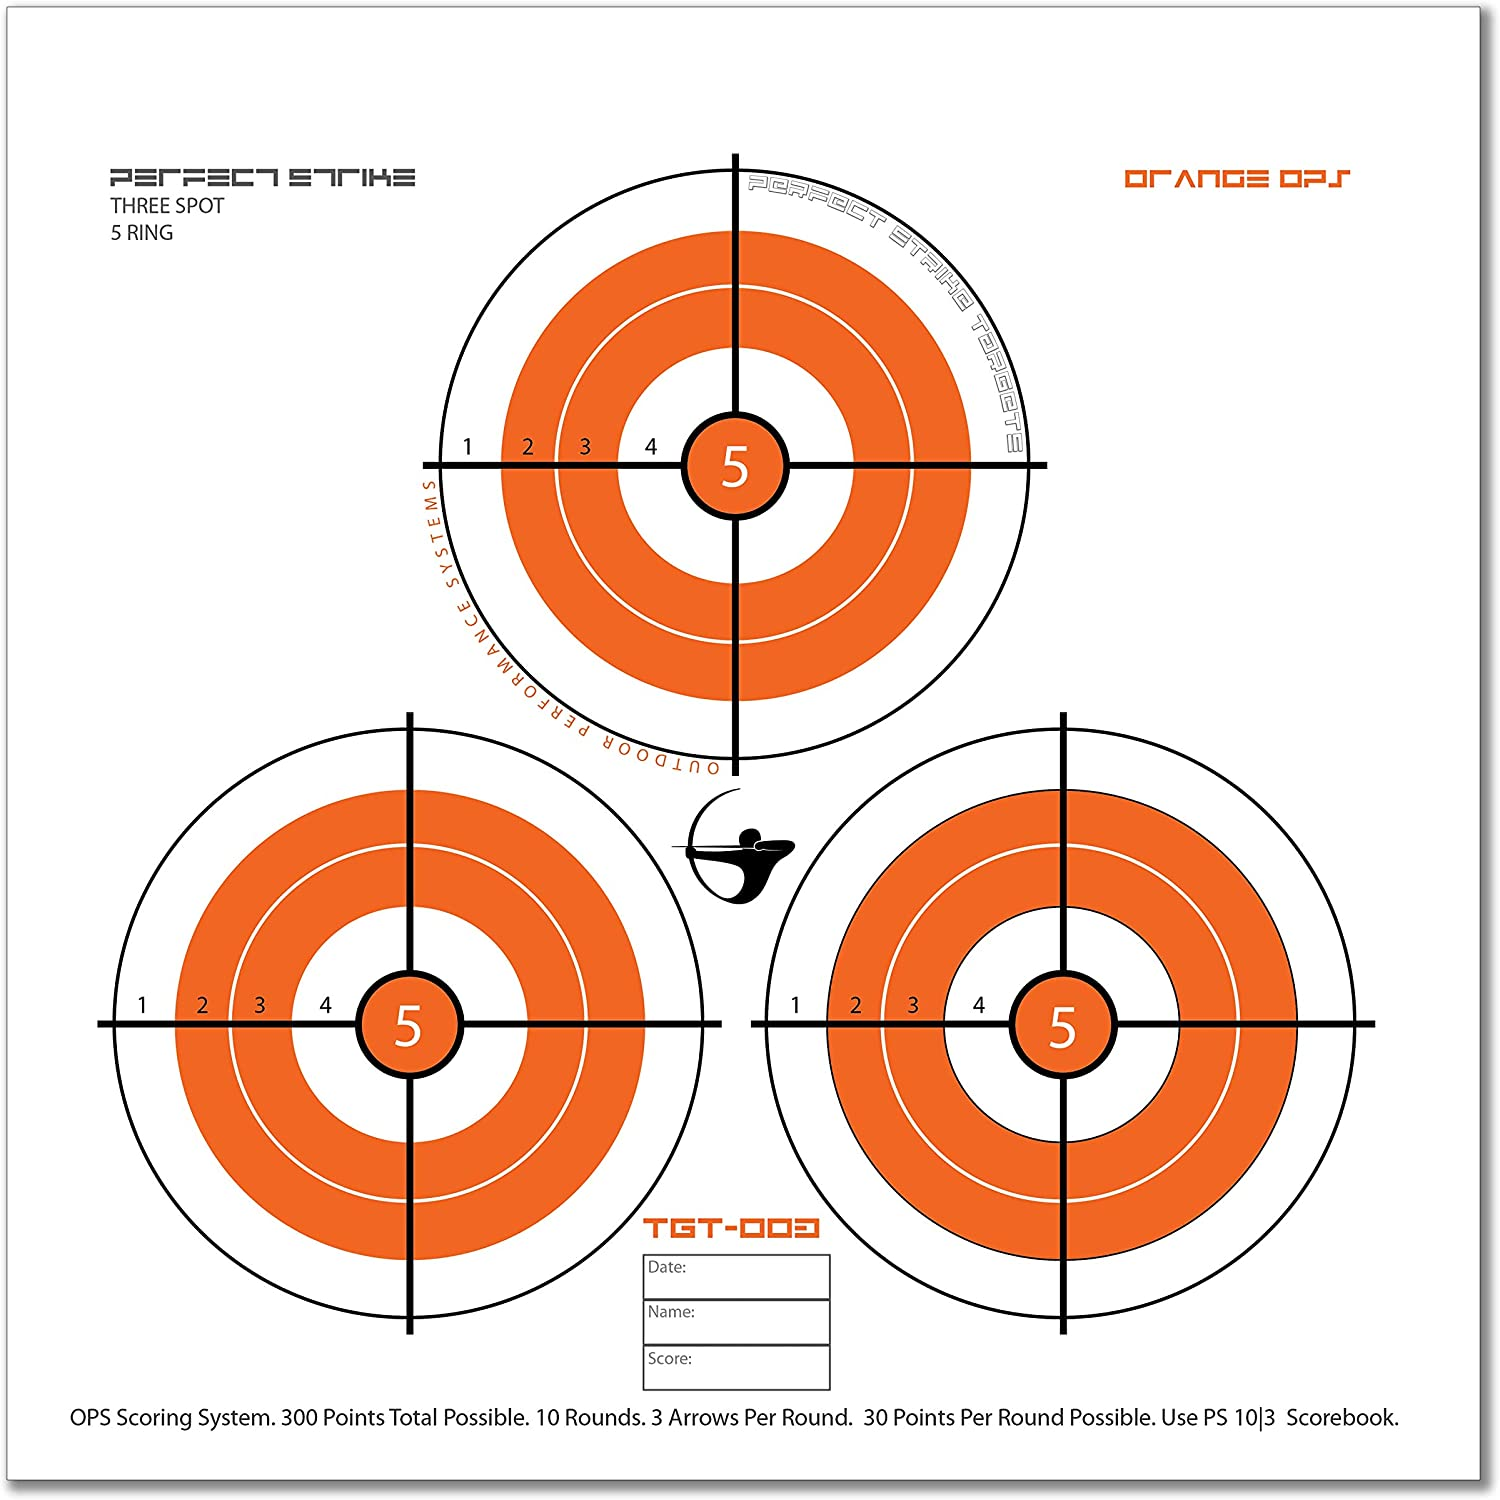 12 x 12. Great for improving accuracy 24 Targets. Perfect Strike ARCHERY System Targets ORANGE OPS No Heavy paper practice targets Replacement faces to refresh portable targets 003